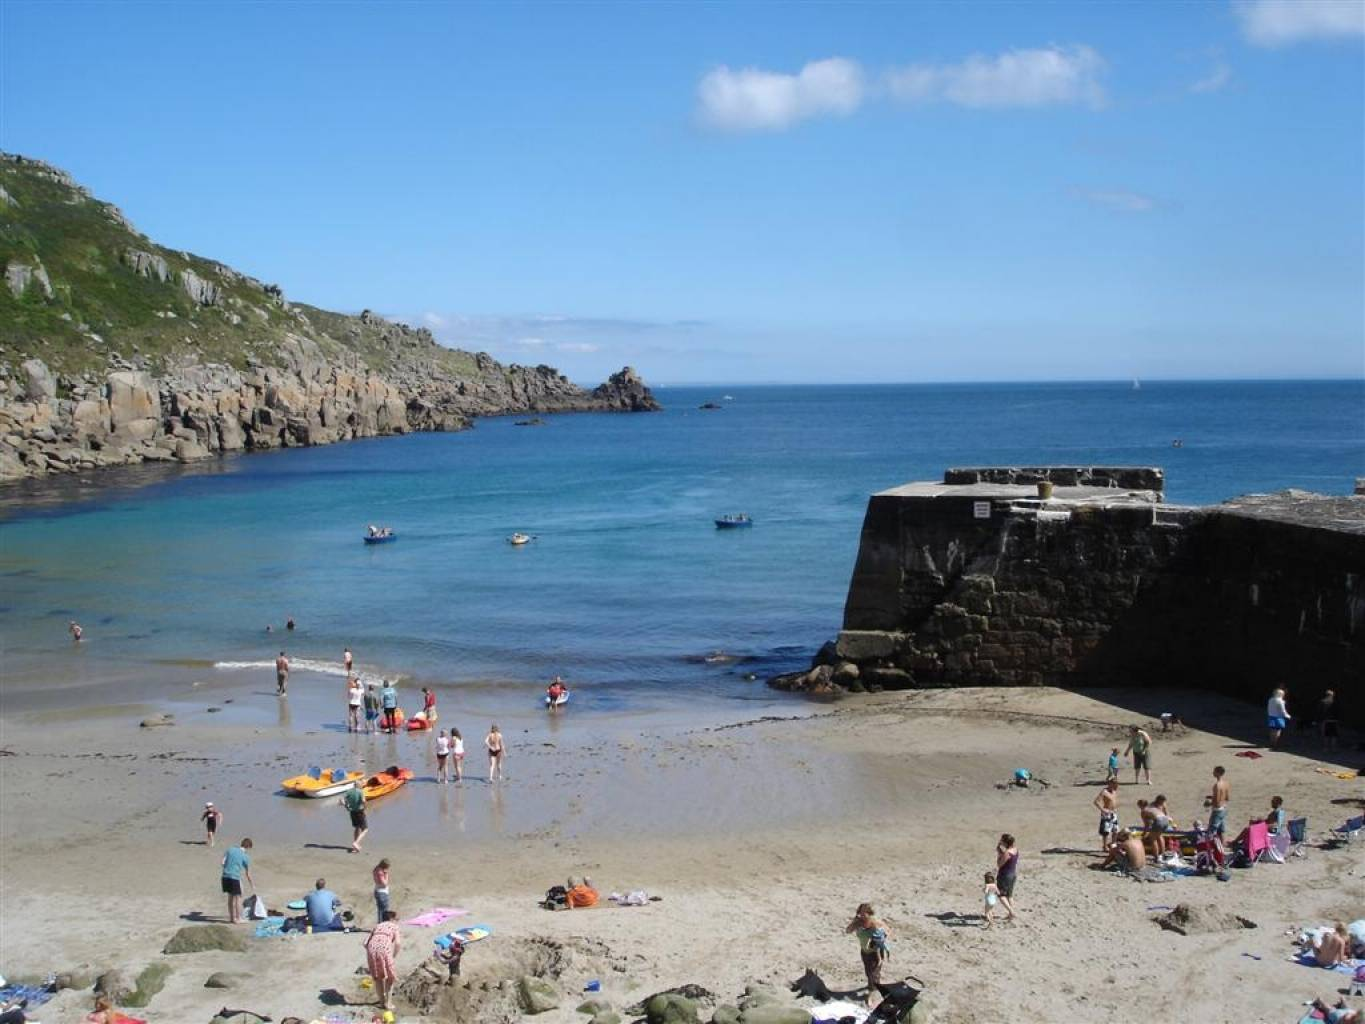 Holidaymakers enjoying the beach at Lamorna Cove